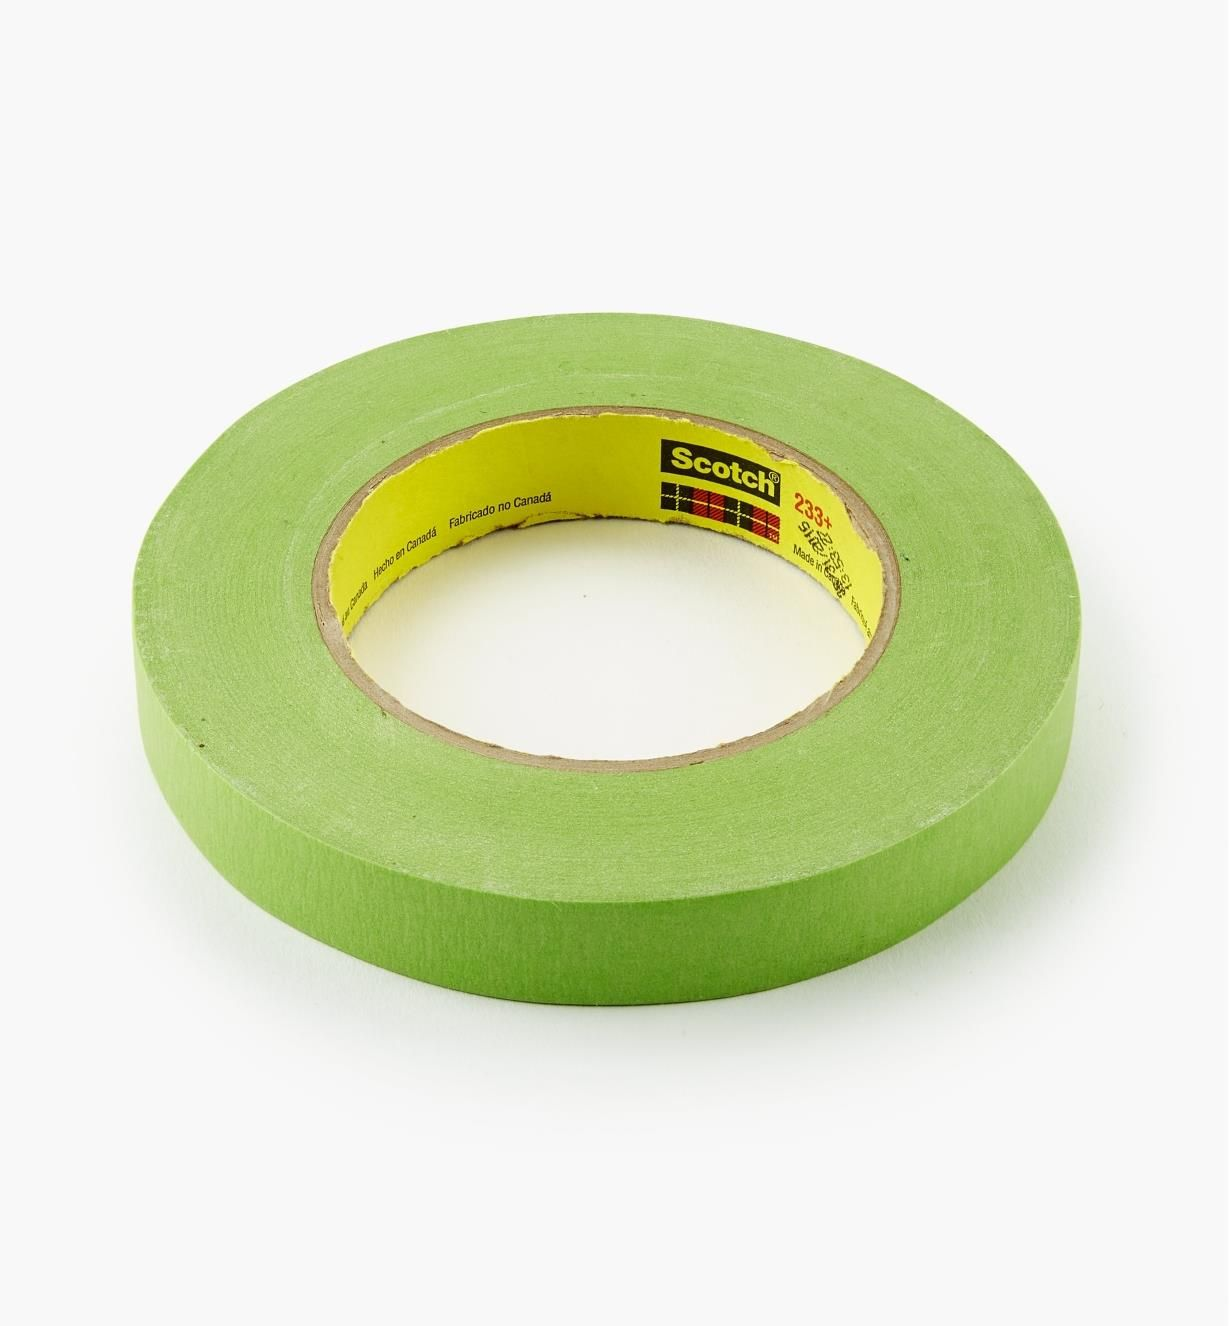 3m Binding Tape In 2020 Rubber Adhesive Tape Masking Tape